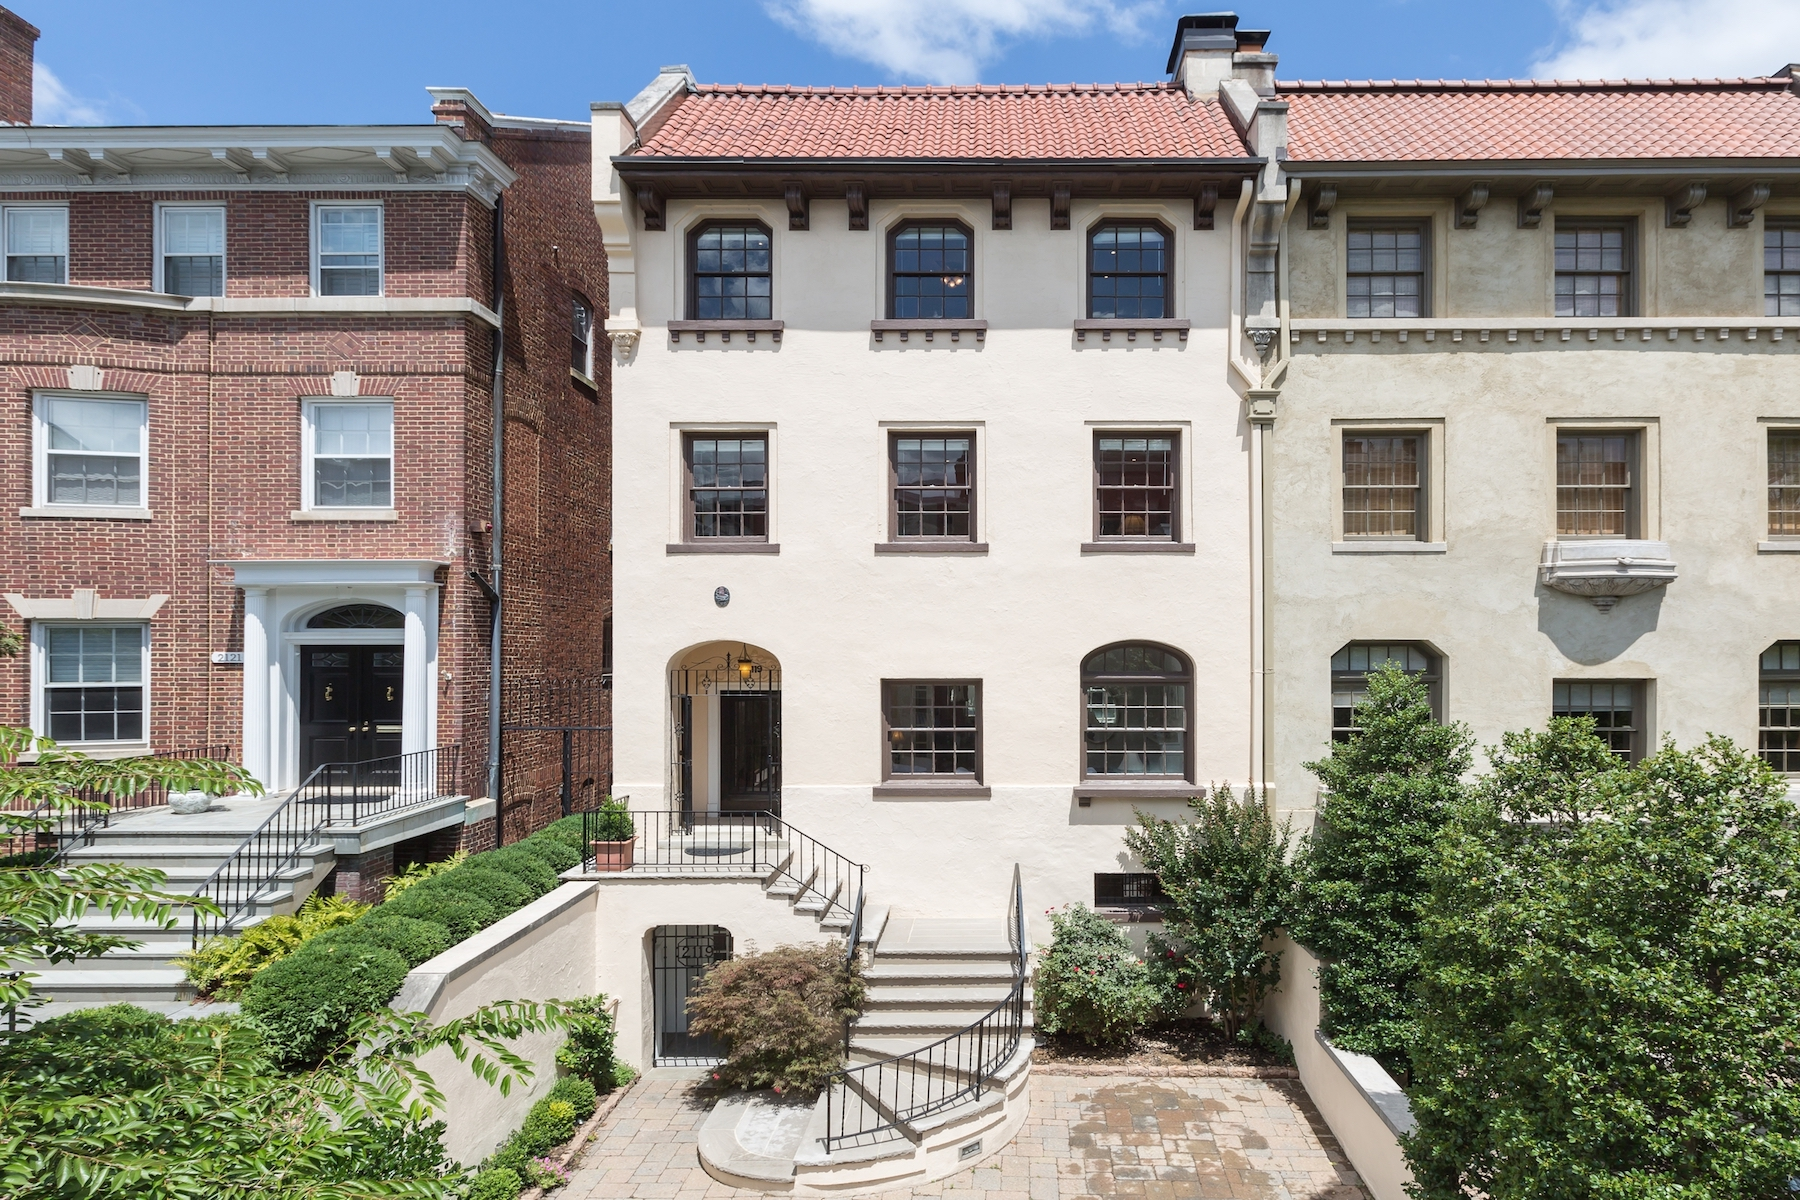 Townhouse for Sale at Kalorama 2119 Leroy Place Nw Washington, District Of Columbia 20008 United States